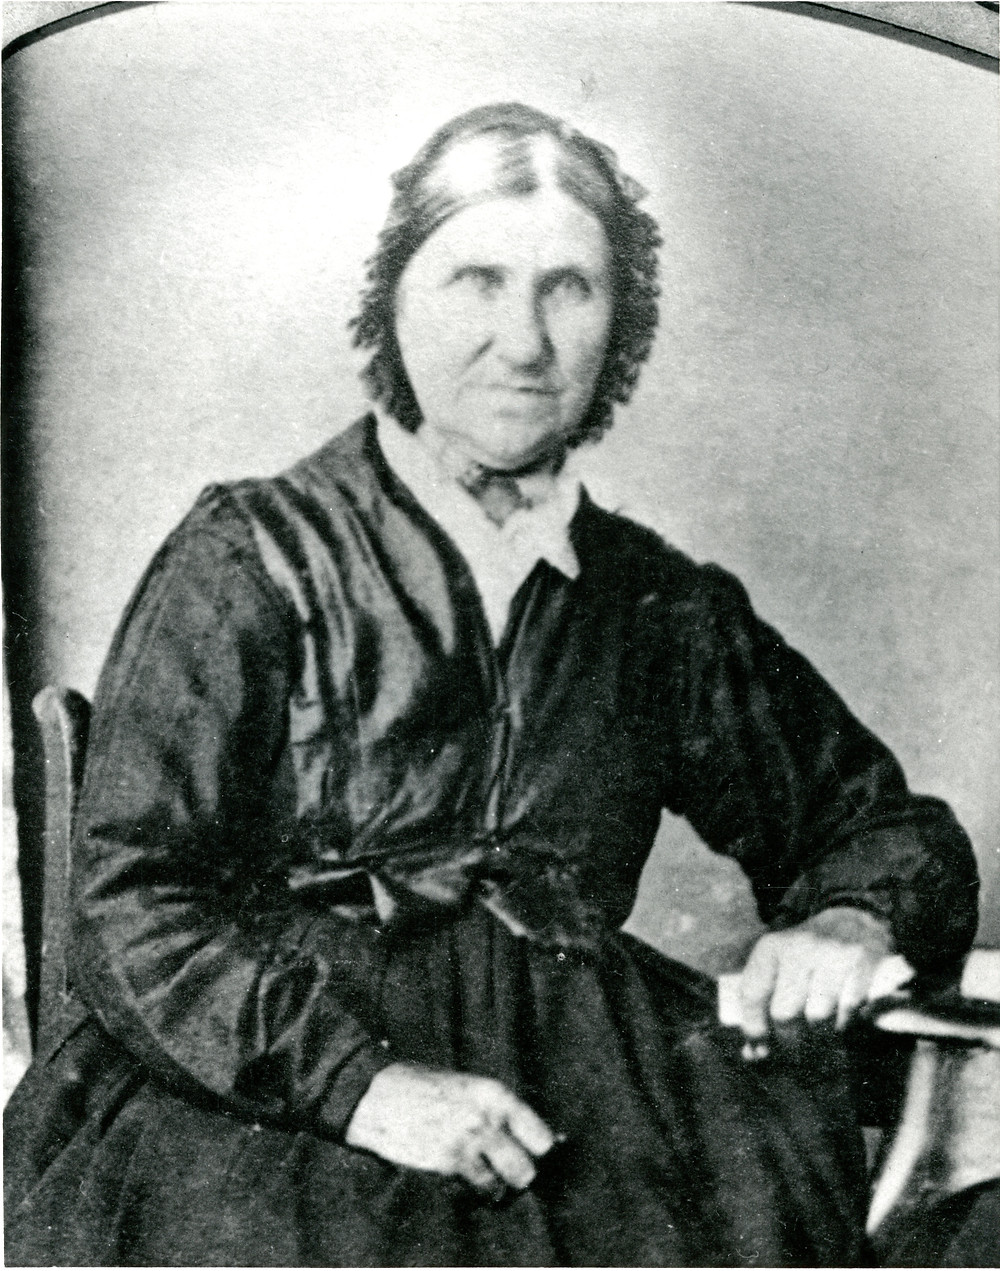 Black and white image of Elizabeth Fisher Stong